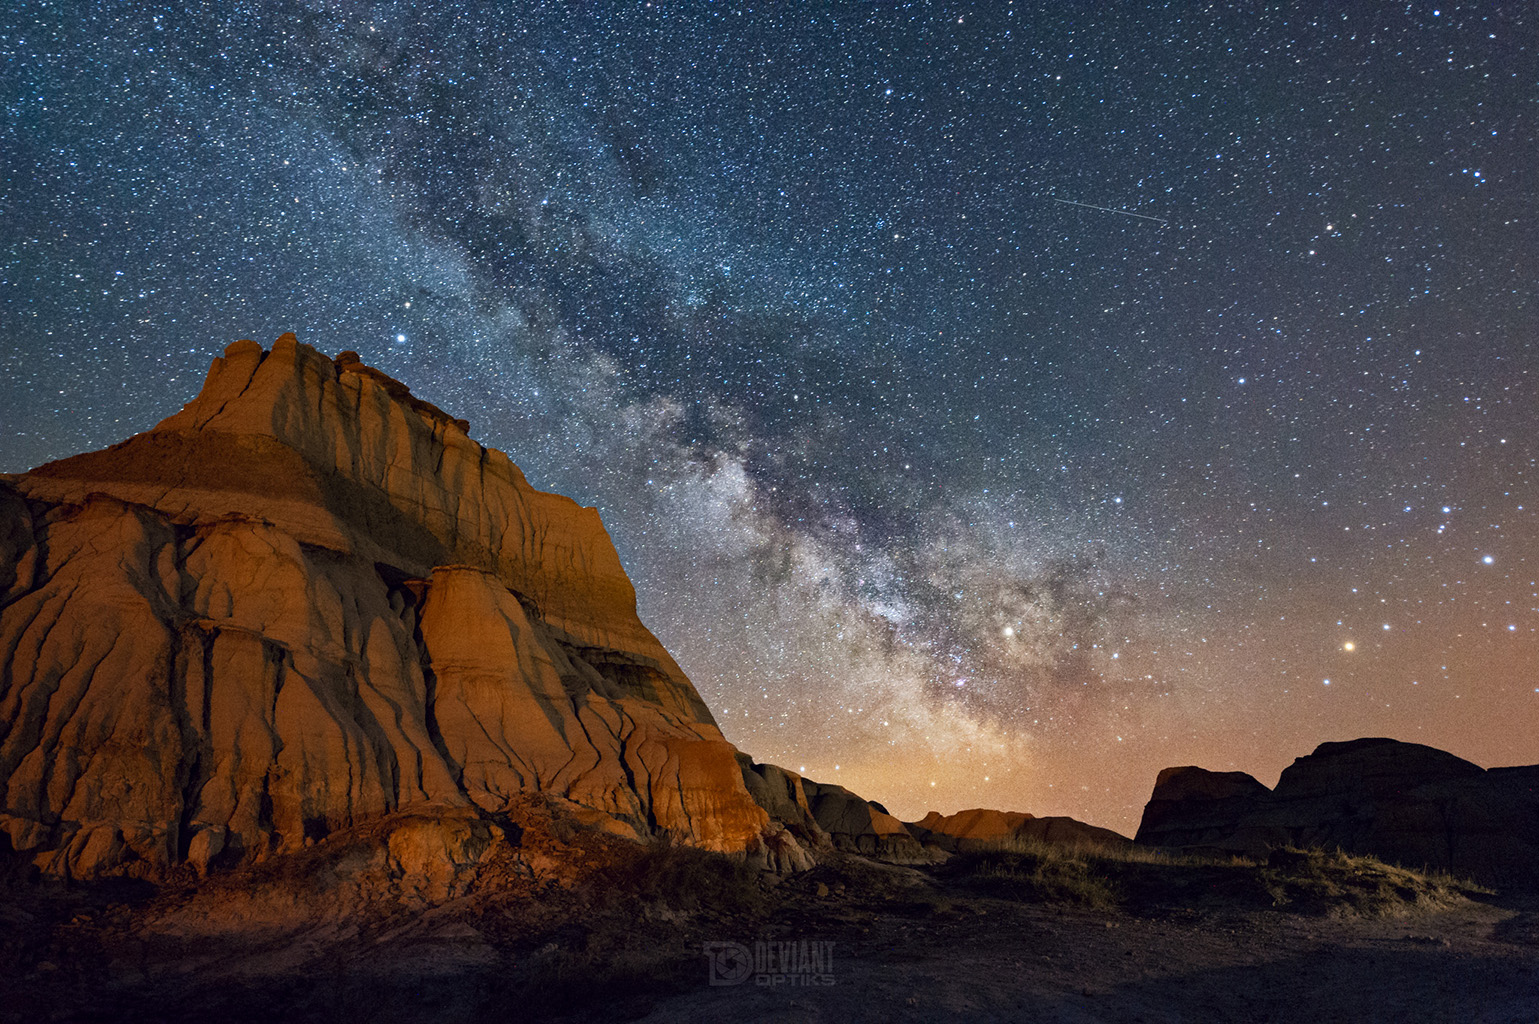 Milky Way at Dinosaur Provincial Park